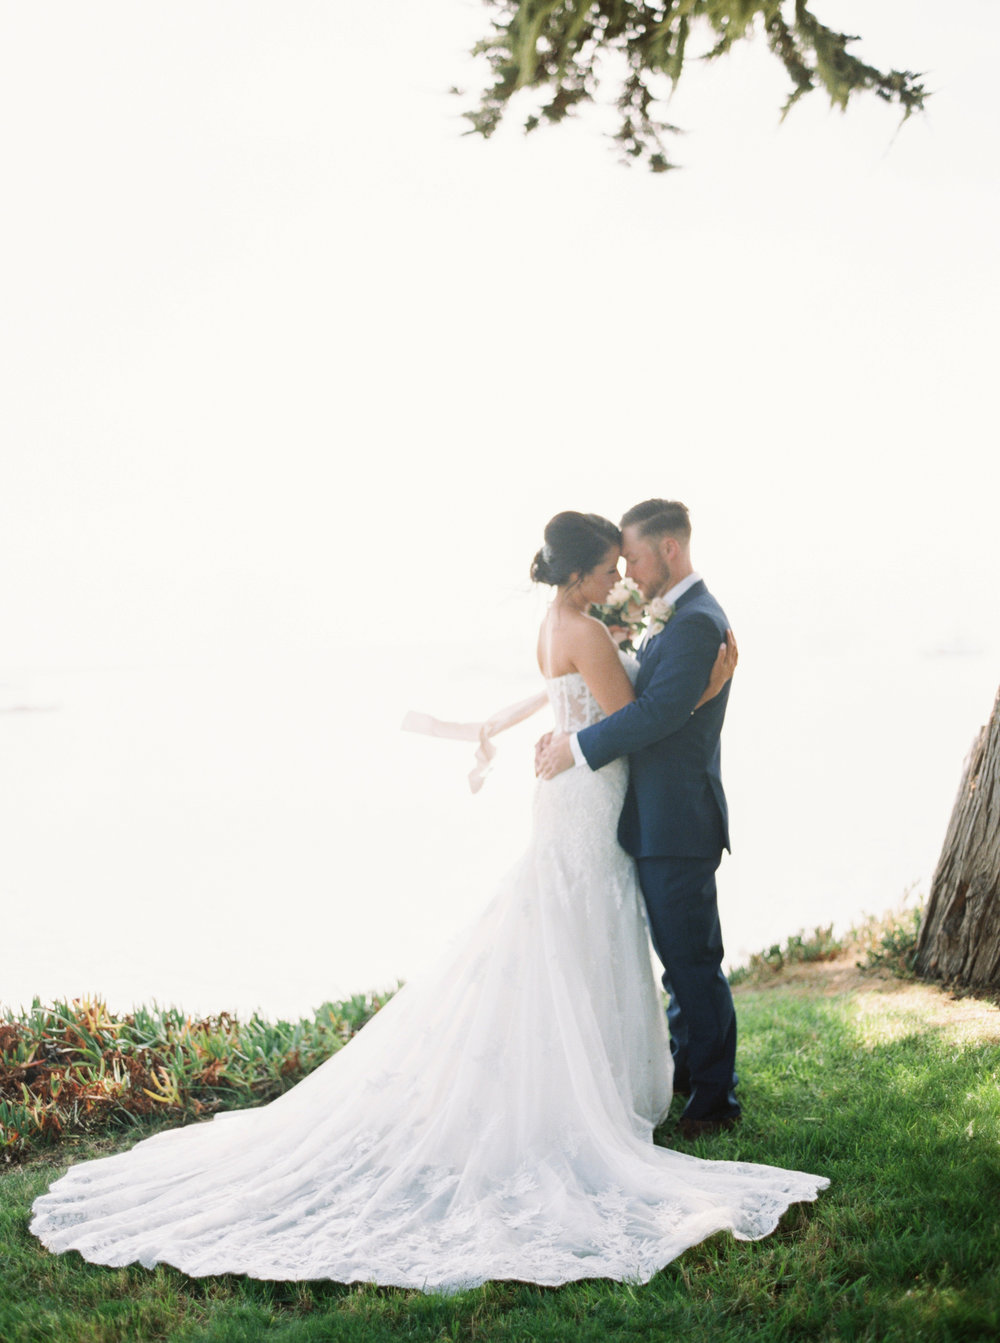 trynhphoto_socal_sf_halfmoon_bay_wedding_photographer_JA-118.jpg